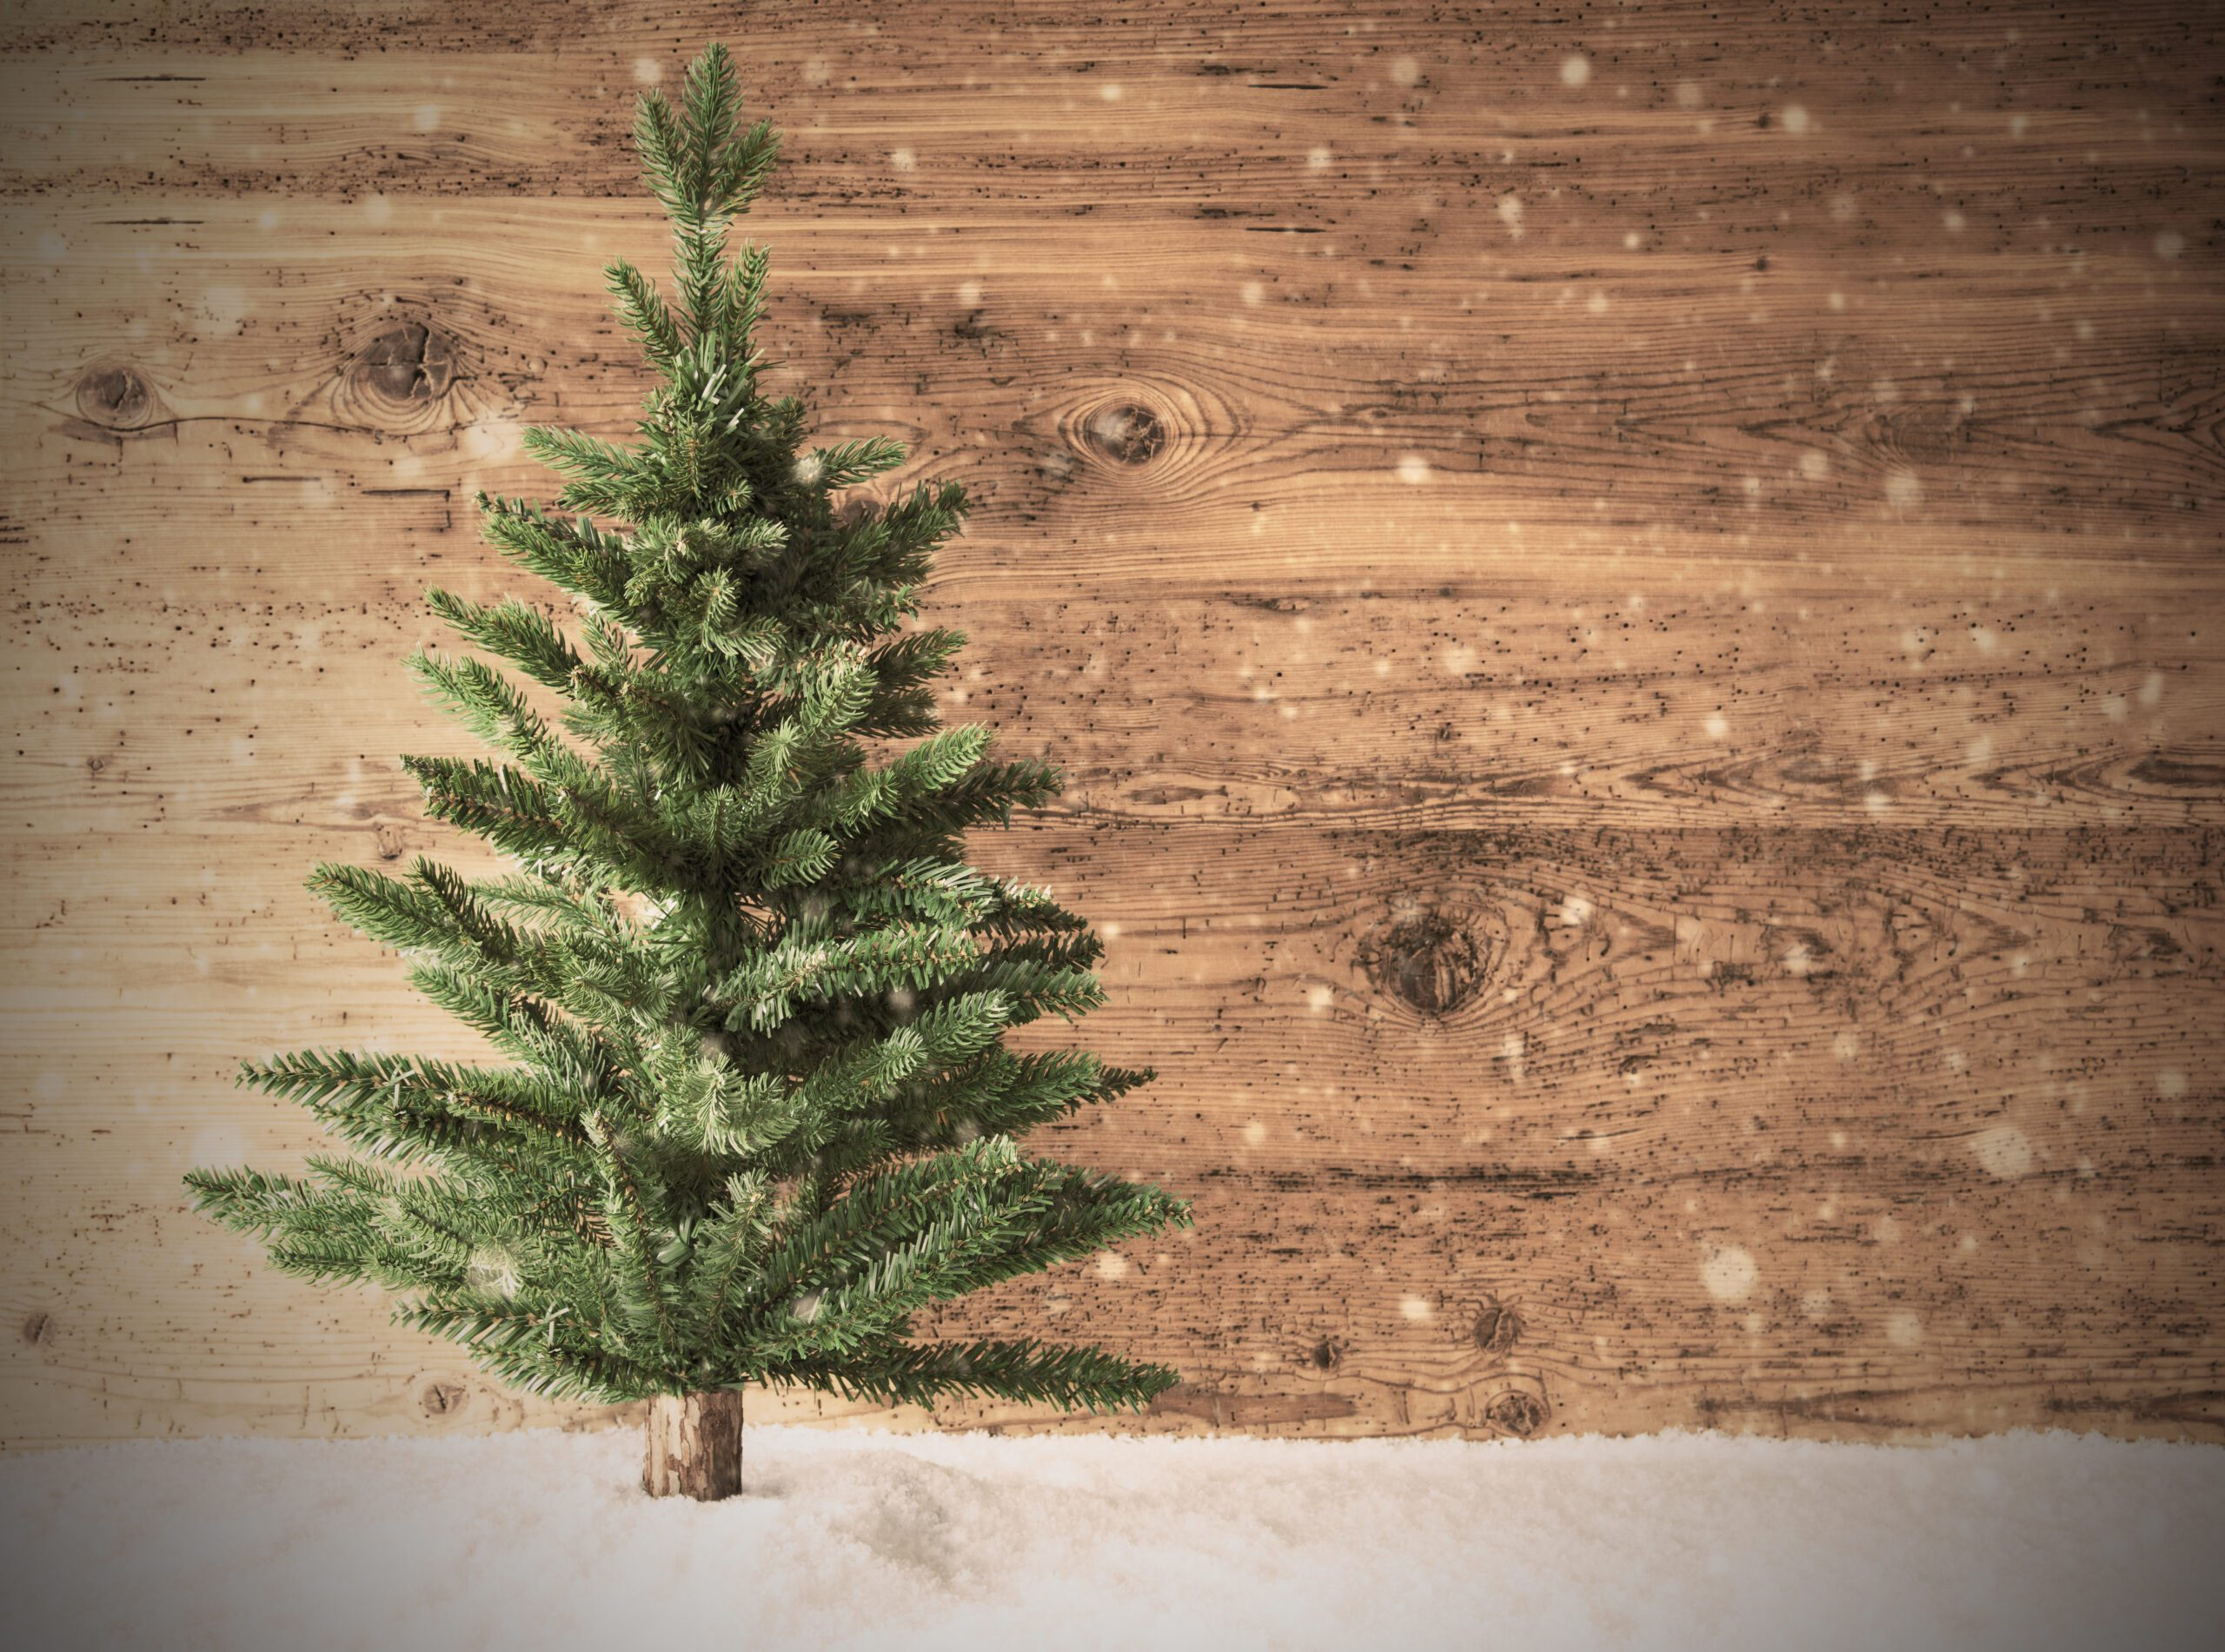 Retro Christmas Tree, Snow, Copy Space, Wooden Background